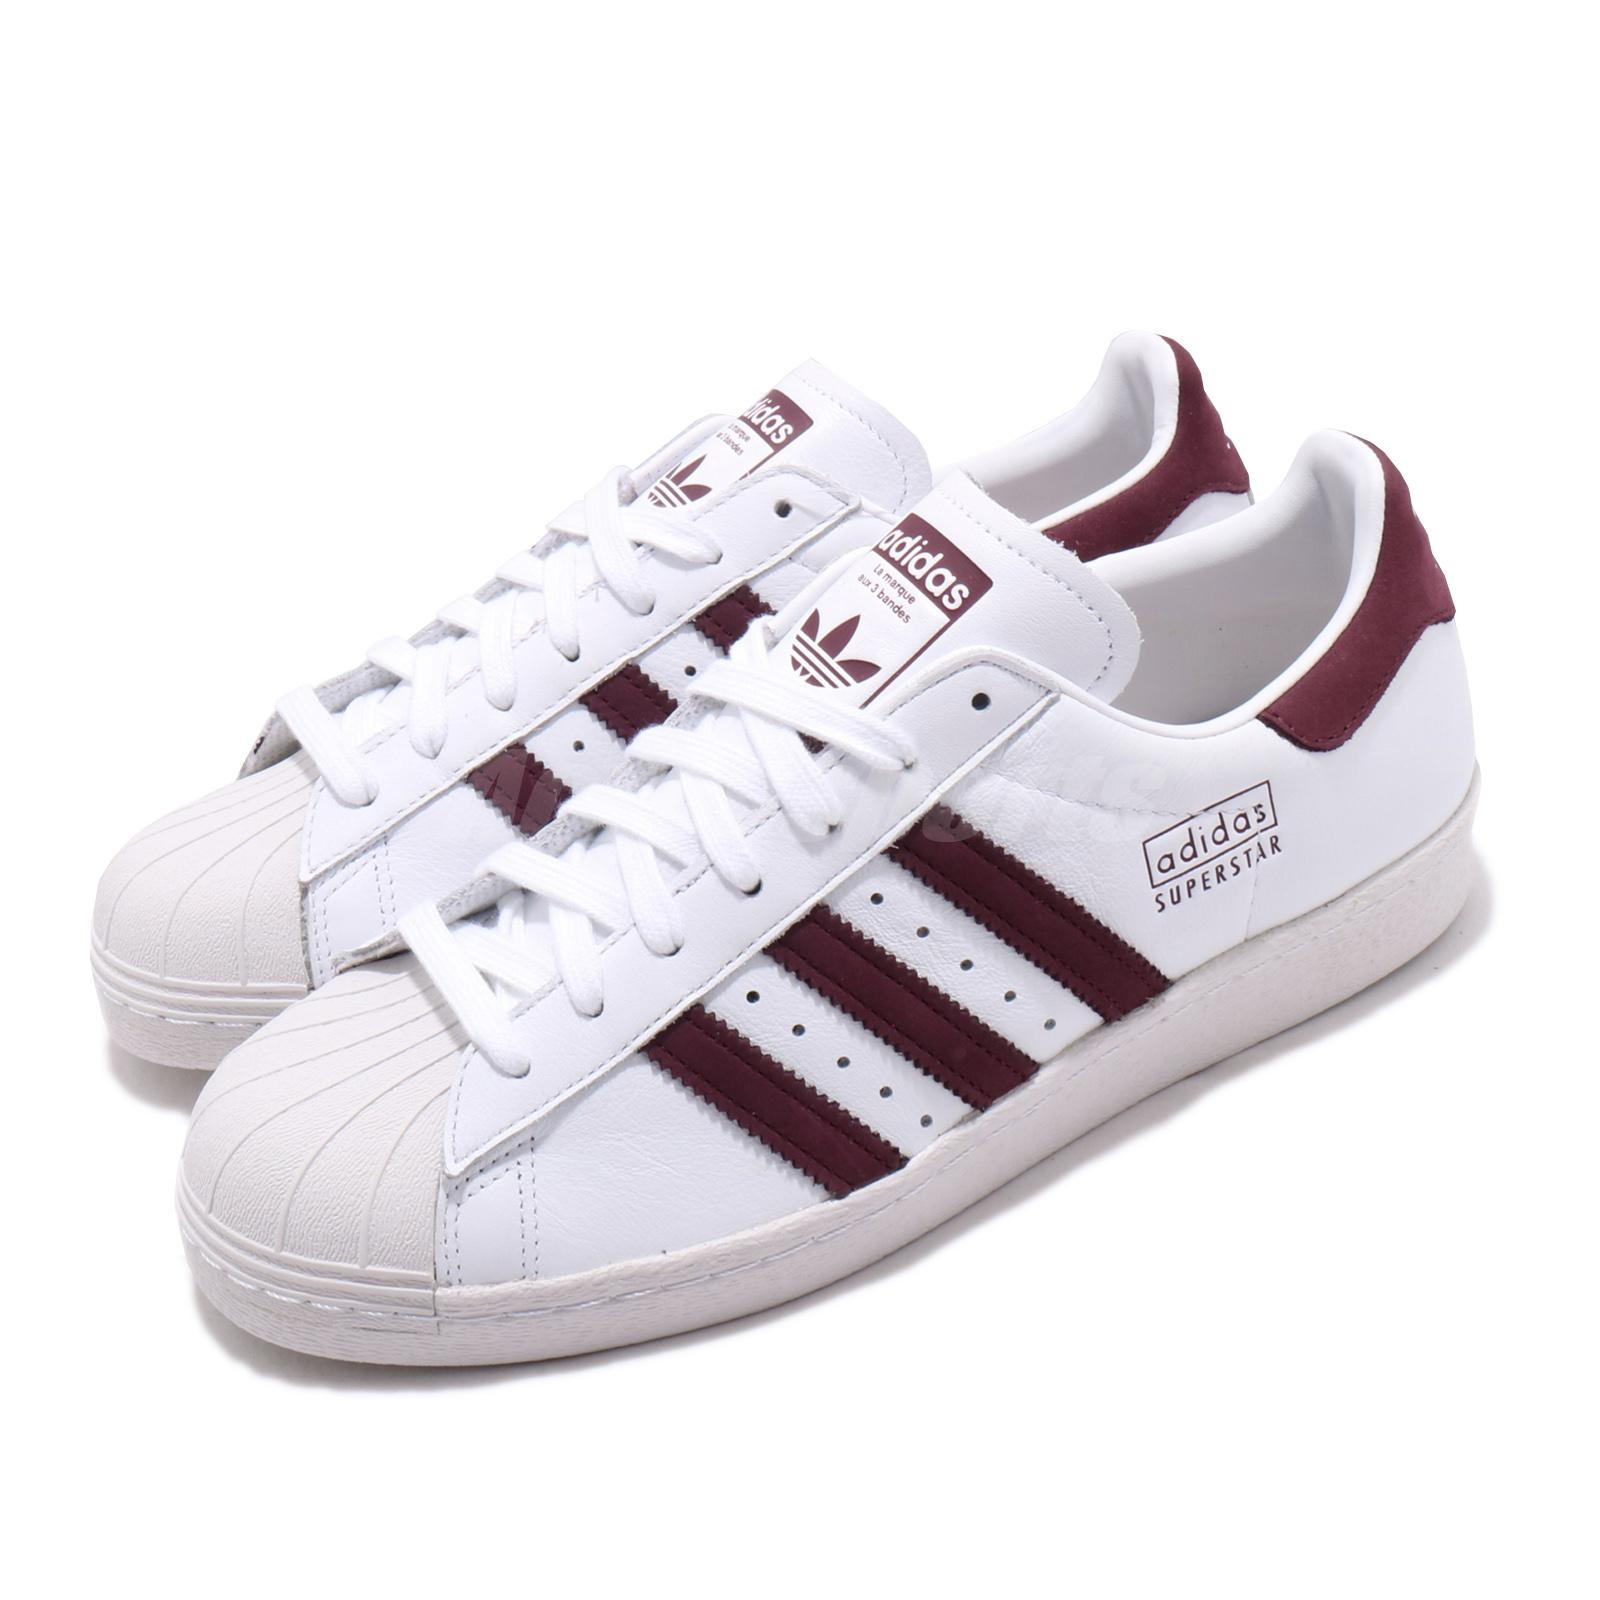 Details about adidas Originals Superstar 80s White Maroon Red Men Classic Casual Shoes CM8439